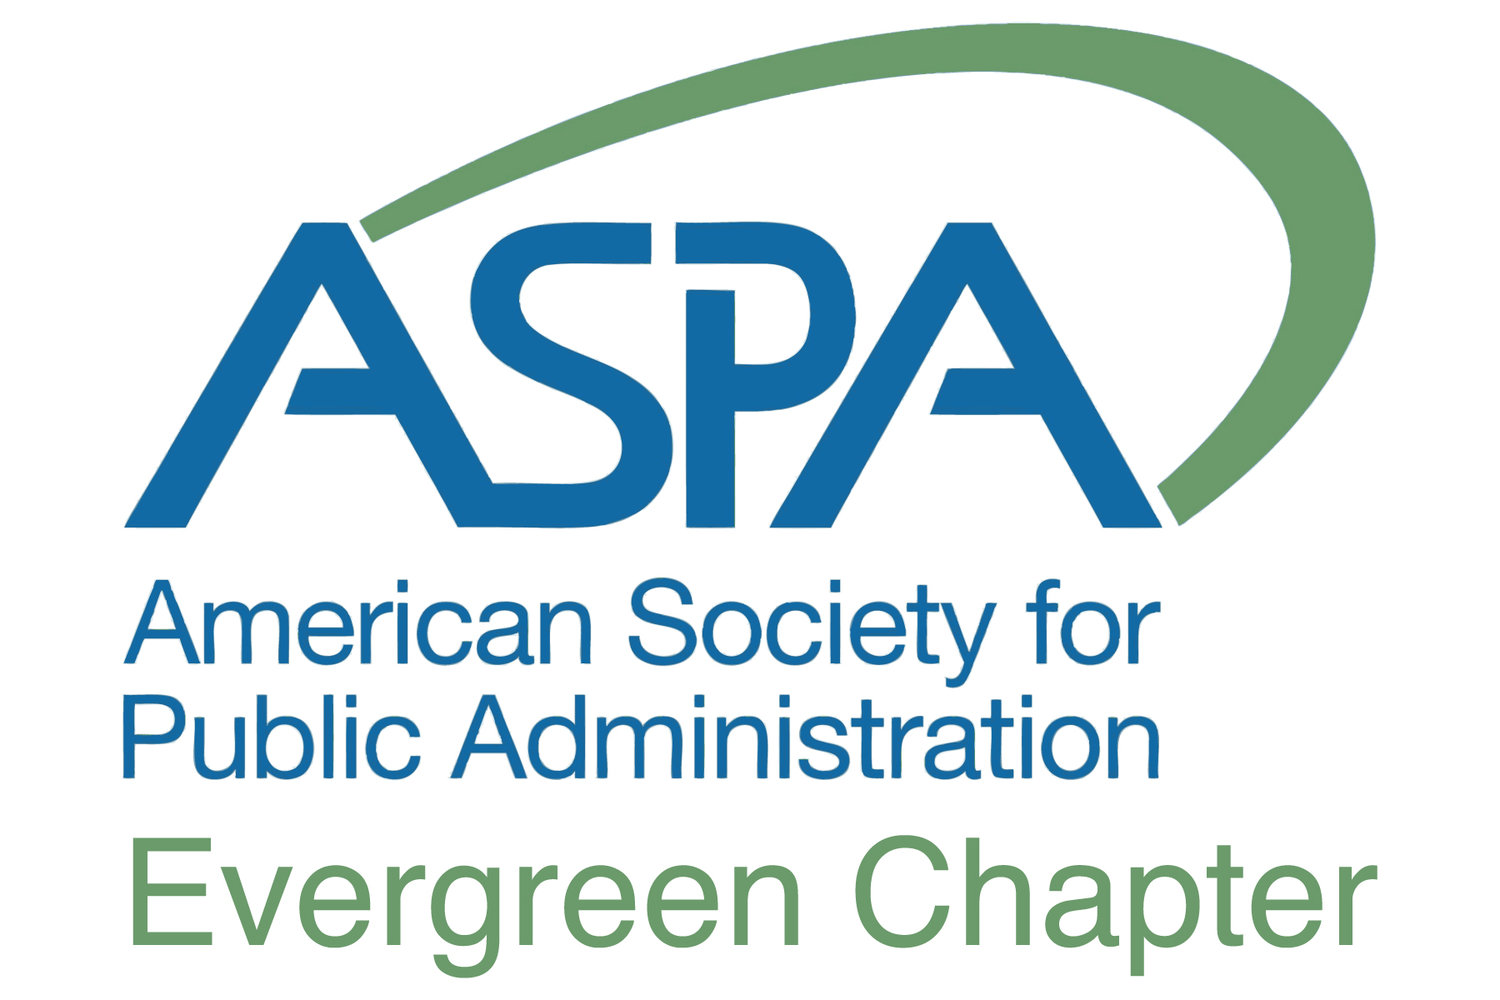 Evergreen Chapter of the ASPA